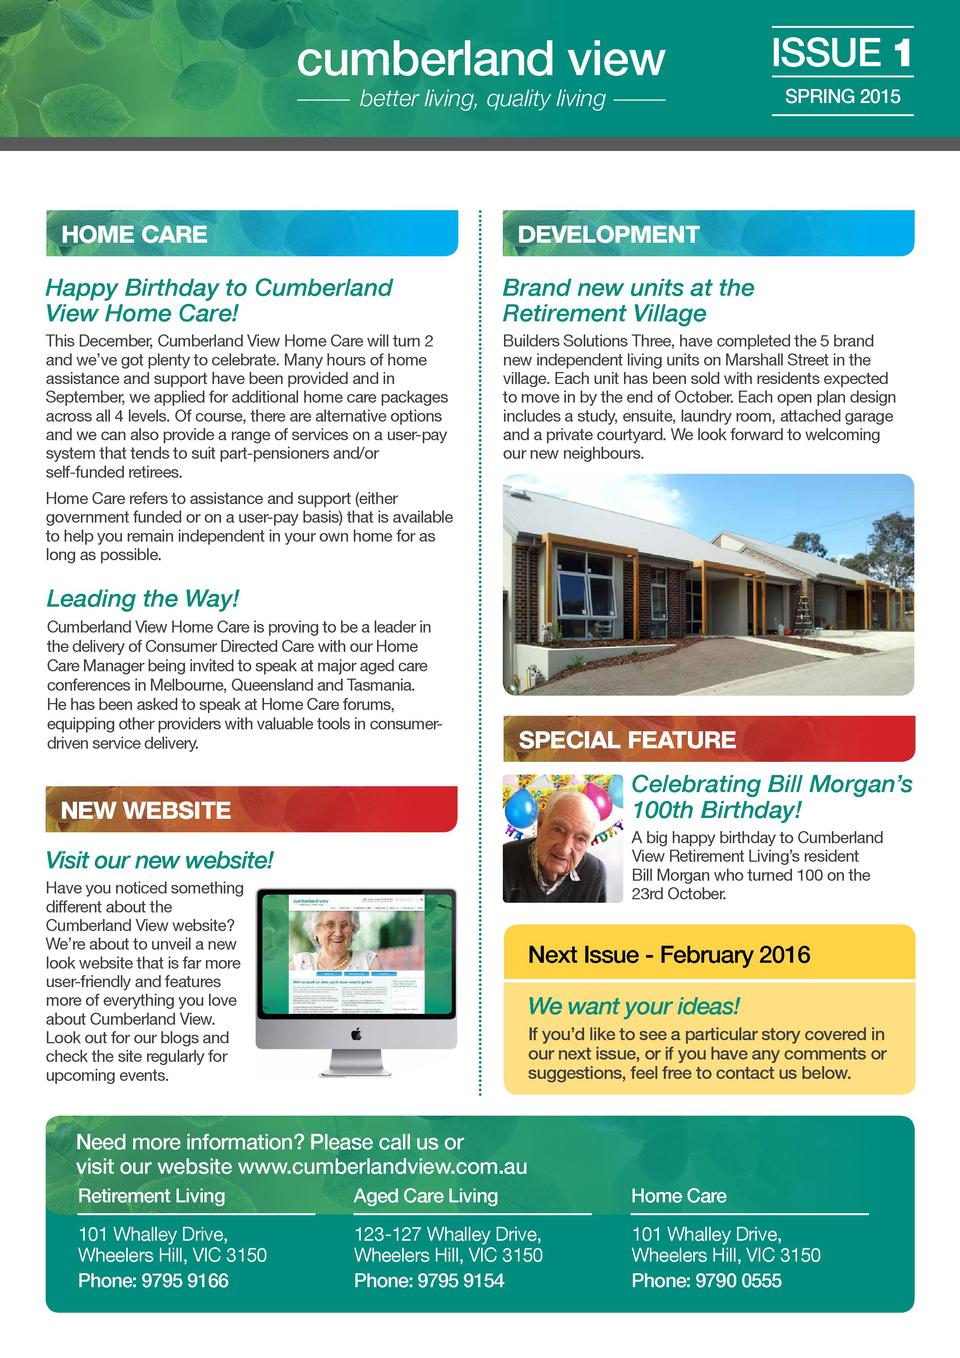 cumberland view better living, quality living  HOME CARE  ISSUE 1 SPRING 2015  DEVELOPMENT  Happy Birthday to Cumberland V...